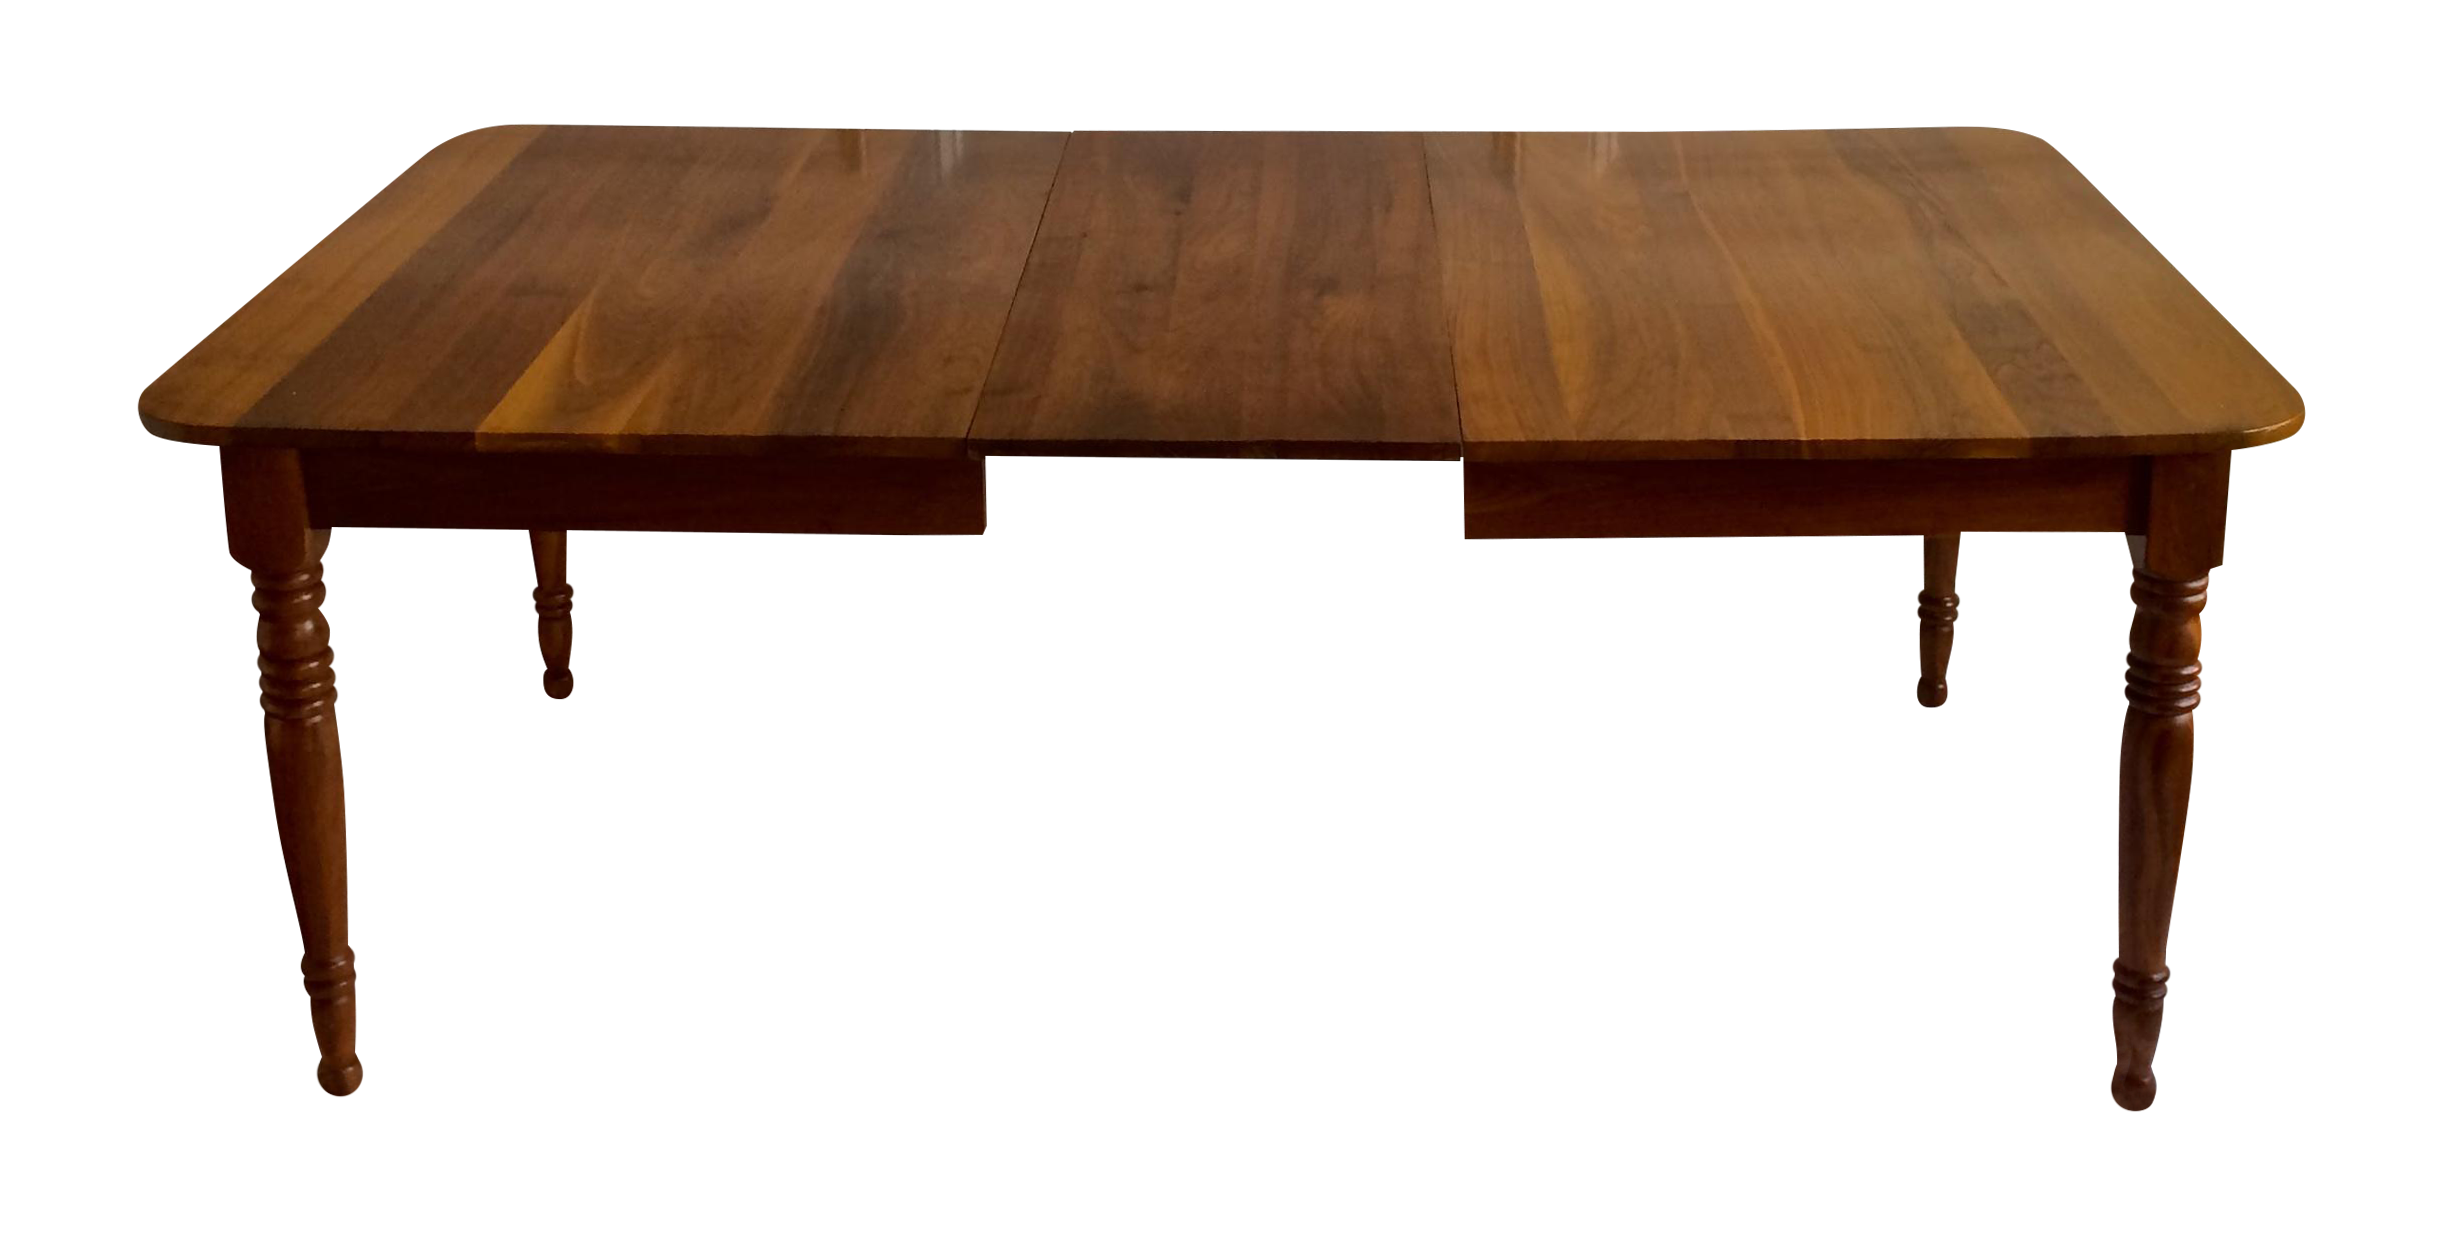 Walnut Dining Table by Walter of Wabash Chairish : walnut dining table by walter of wabash 7041aspectfitampwidth640ampheight640 from www.chairish.com size 640 x 640 jpeg 16kB